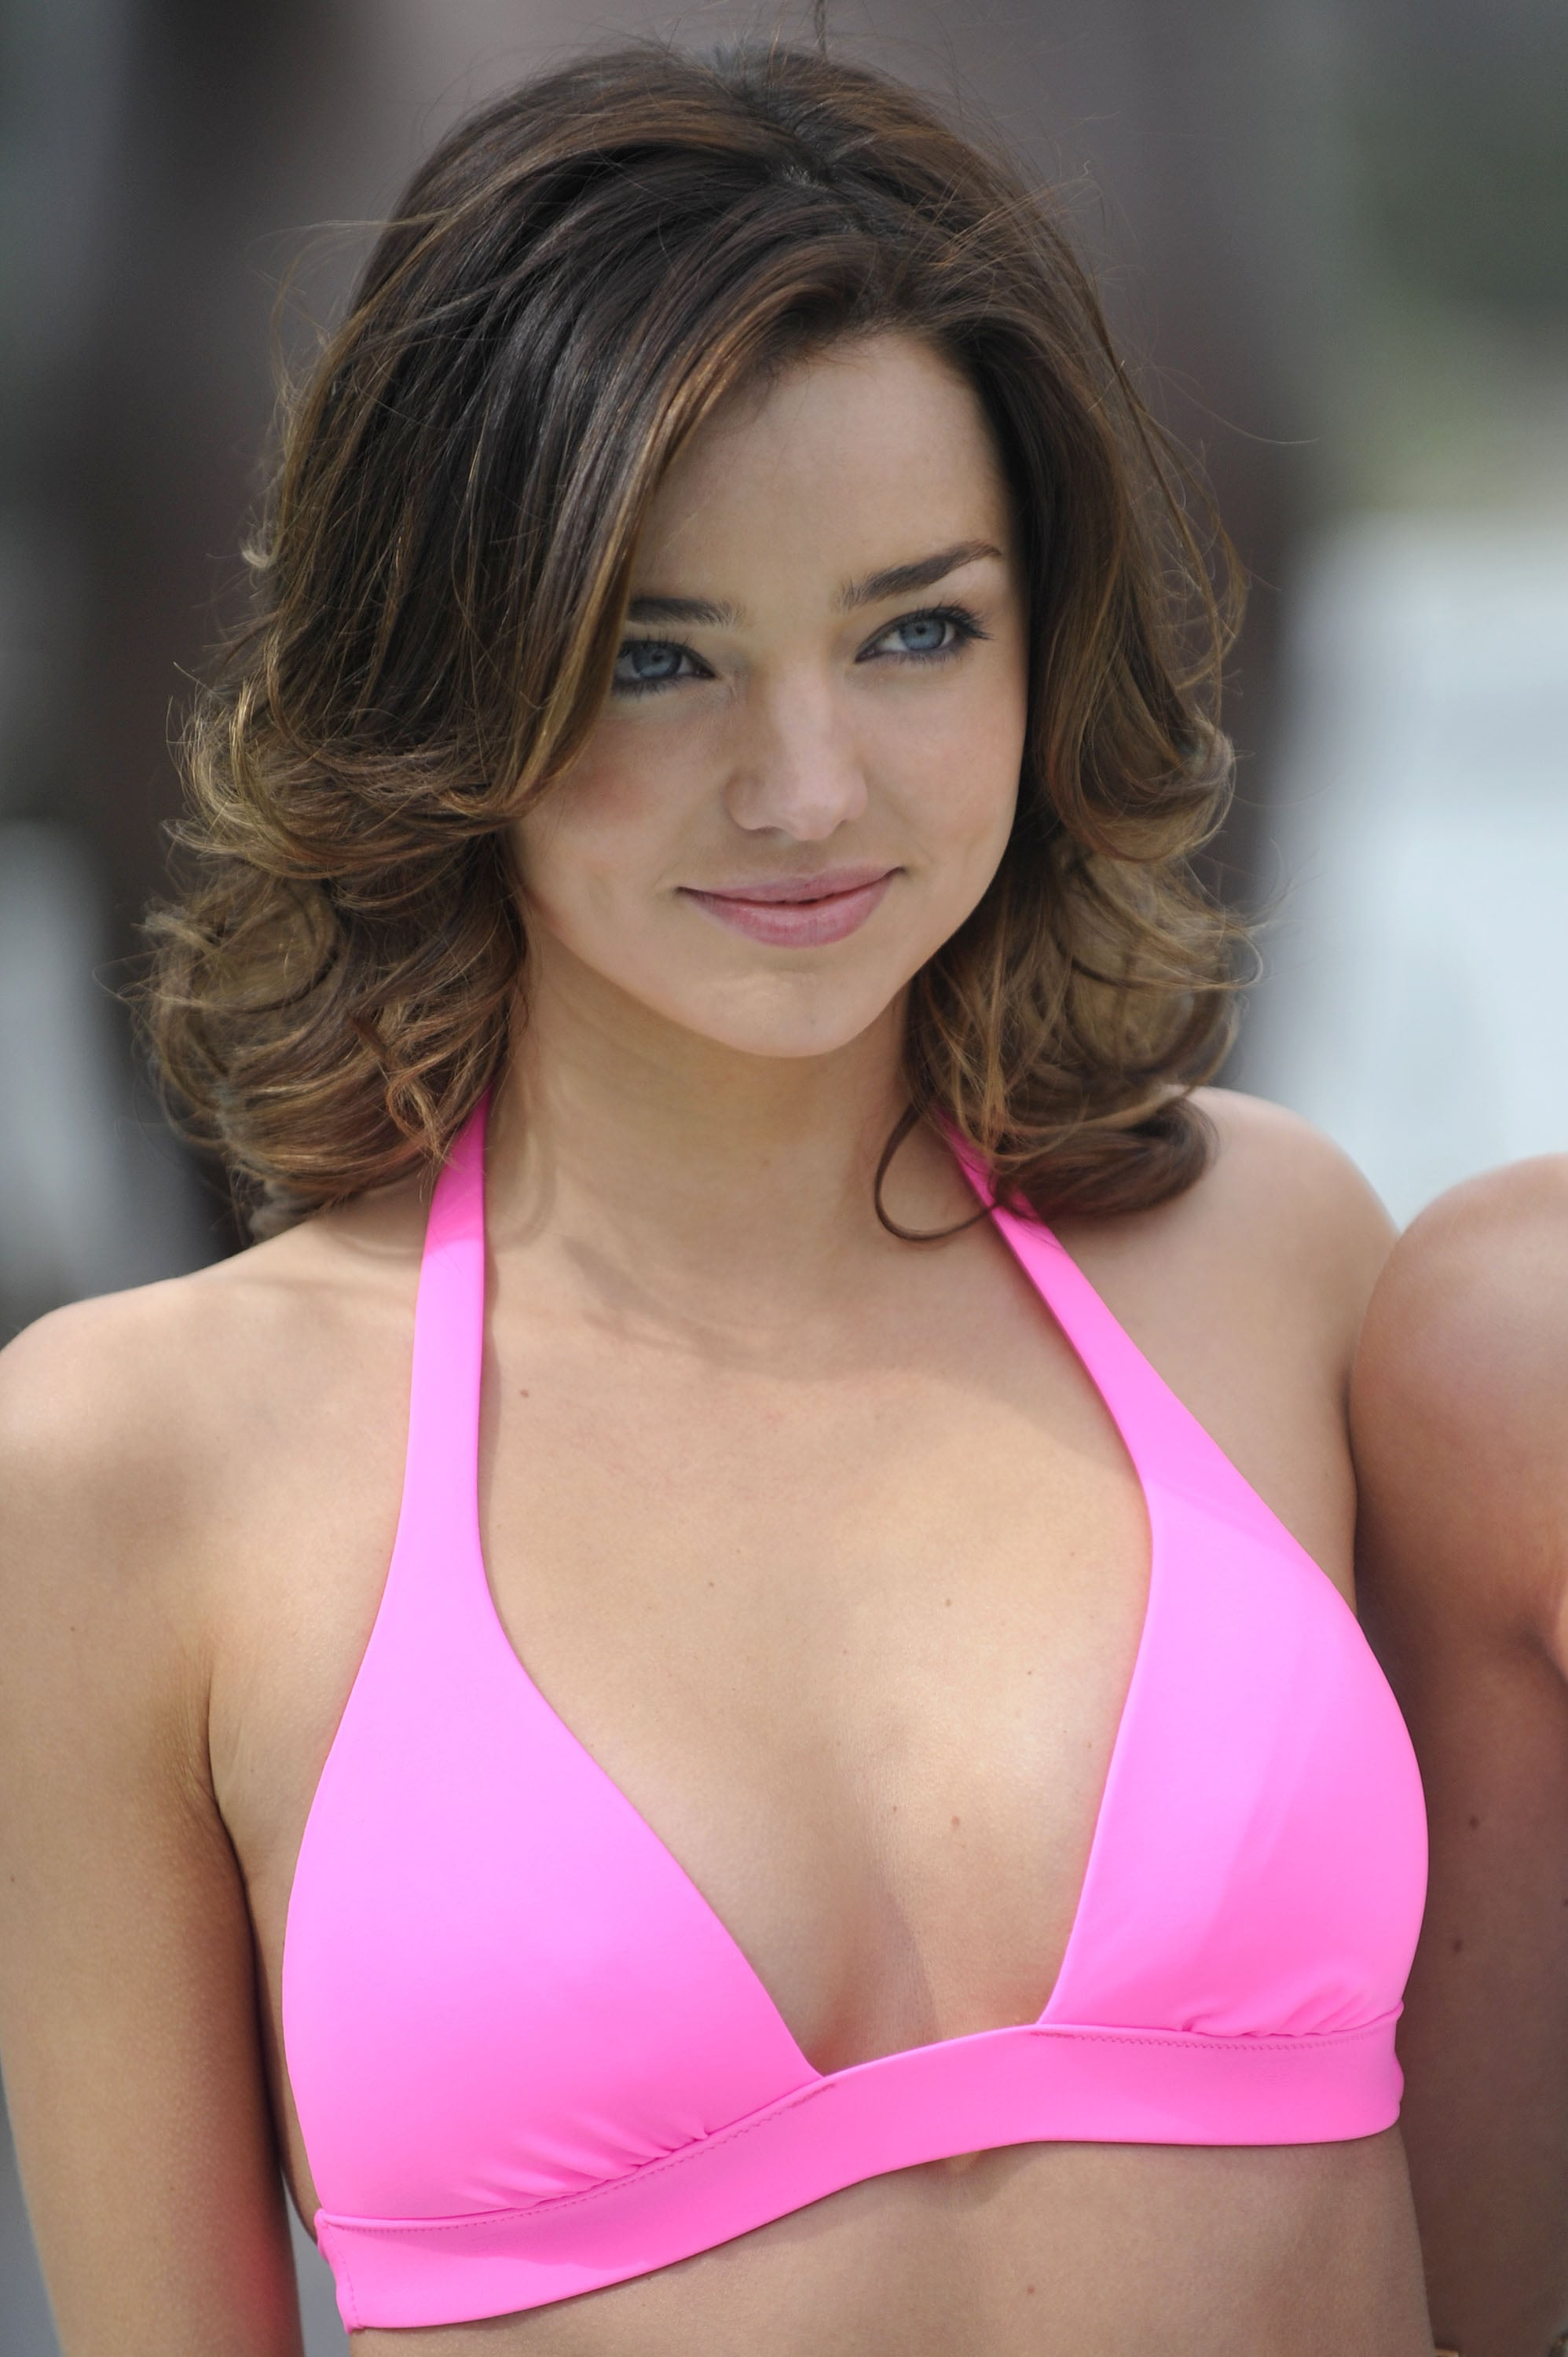 Miranda sported a shorter crop and a pink bikini at the celebration of the 15th anniversary of the Victoria's Secret Swim catalog in 2010.